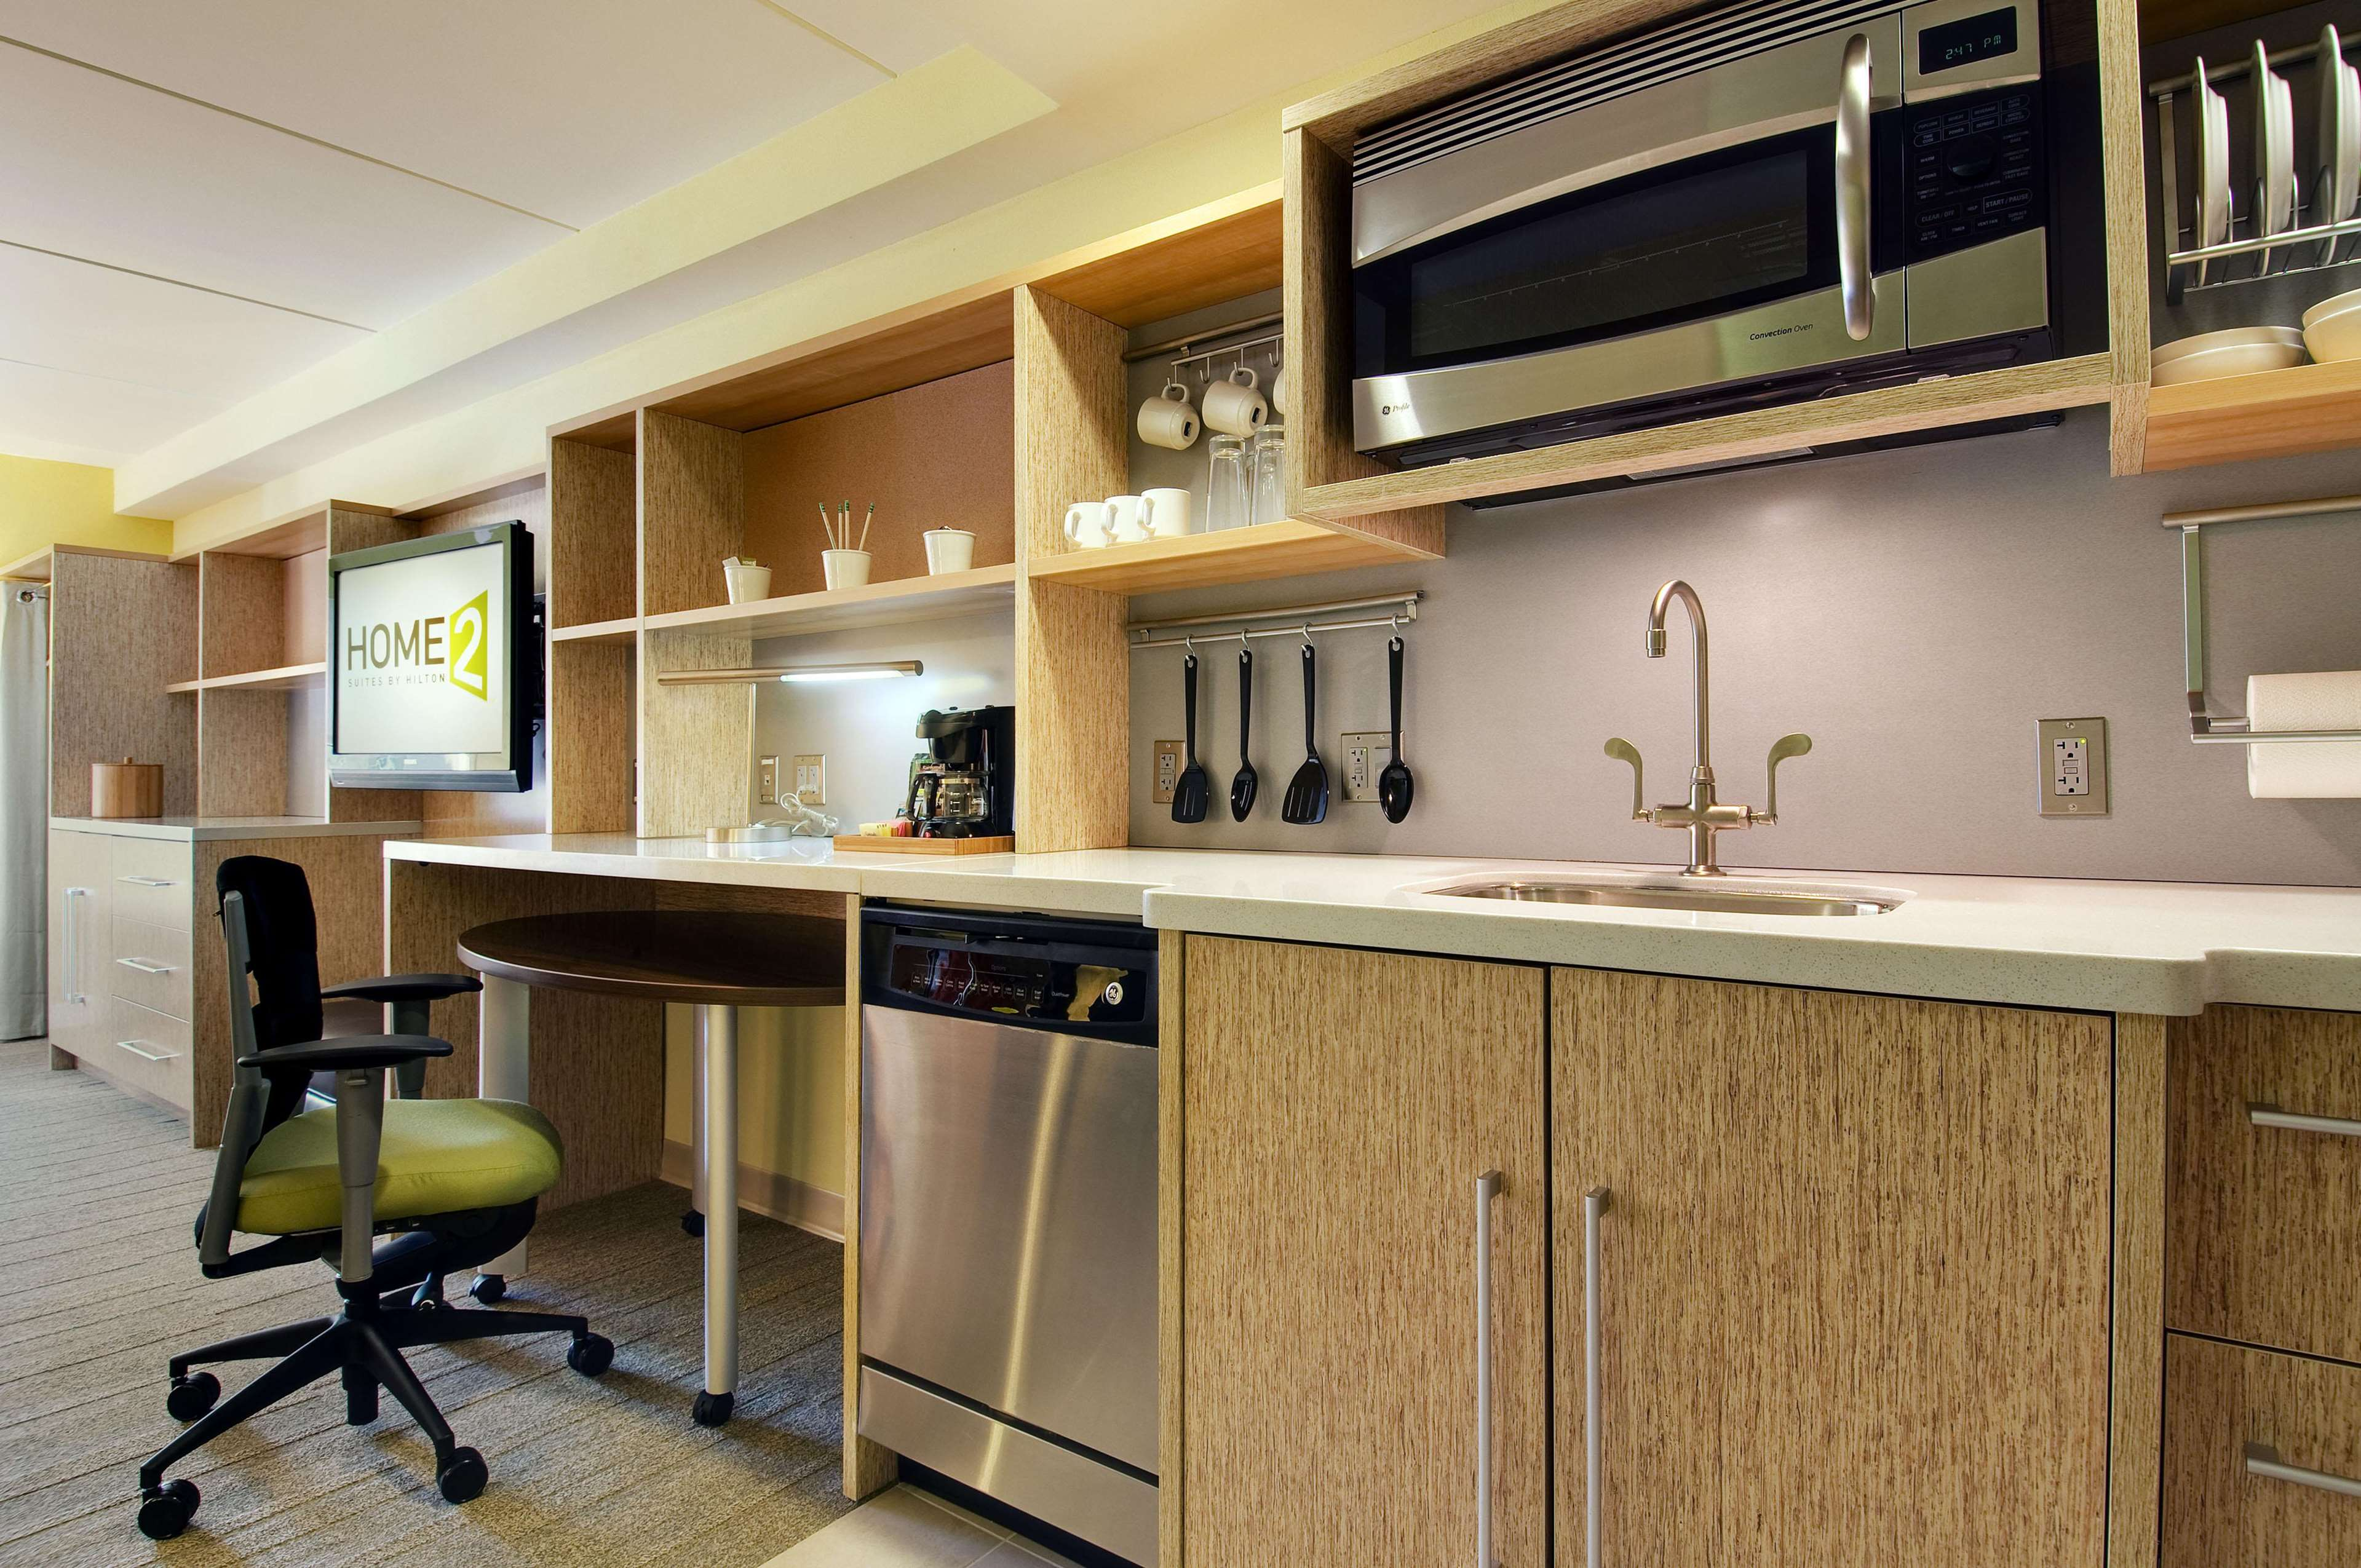 Home2 Suites By Hilton Orlando Airport image 7